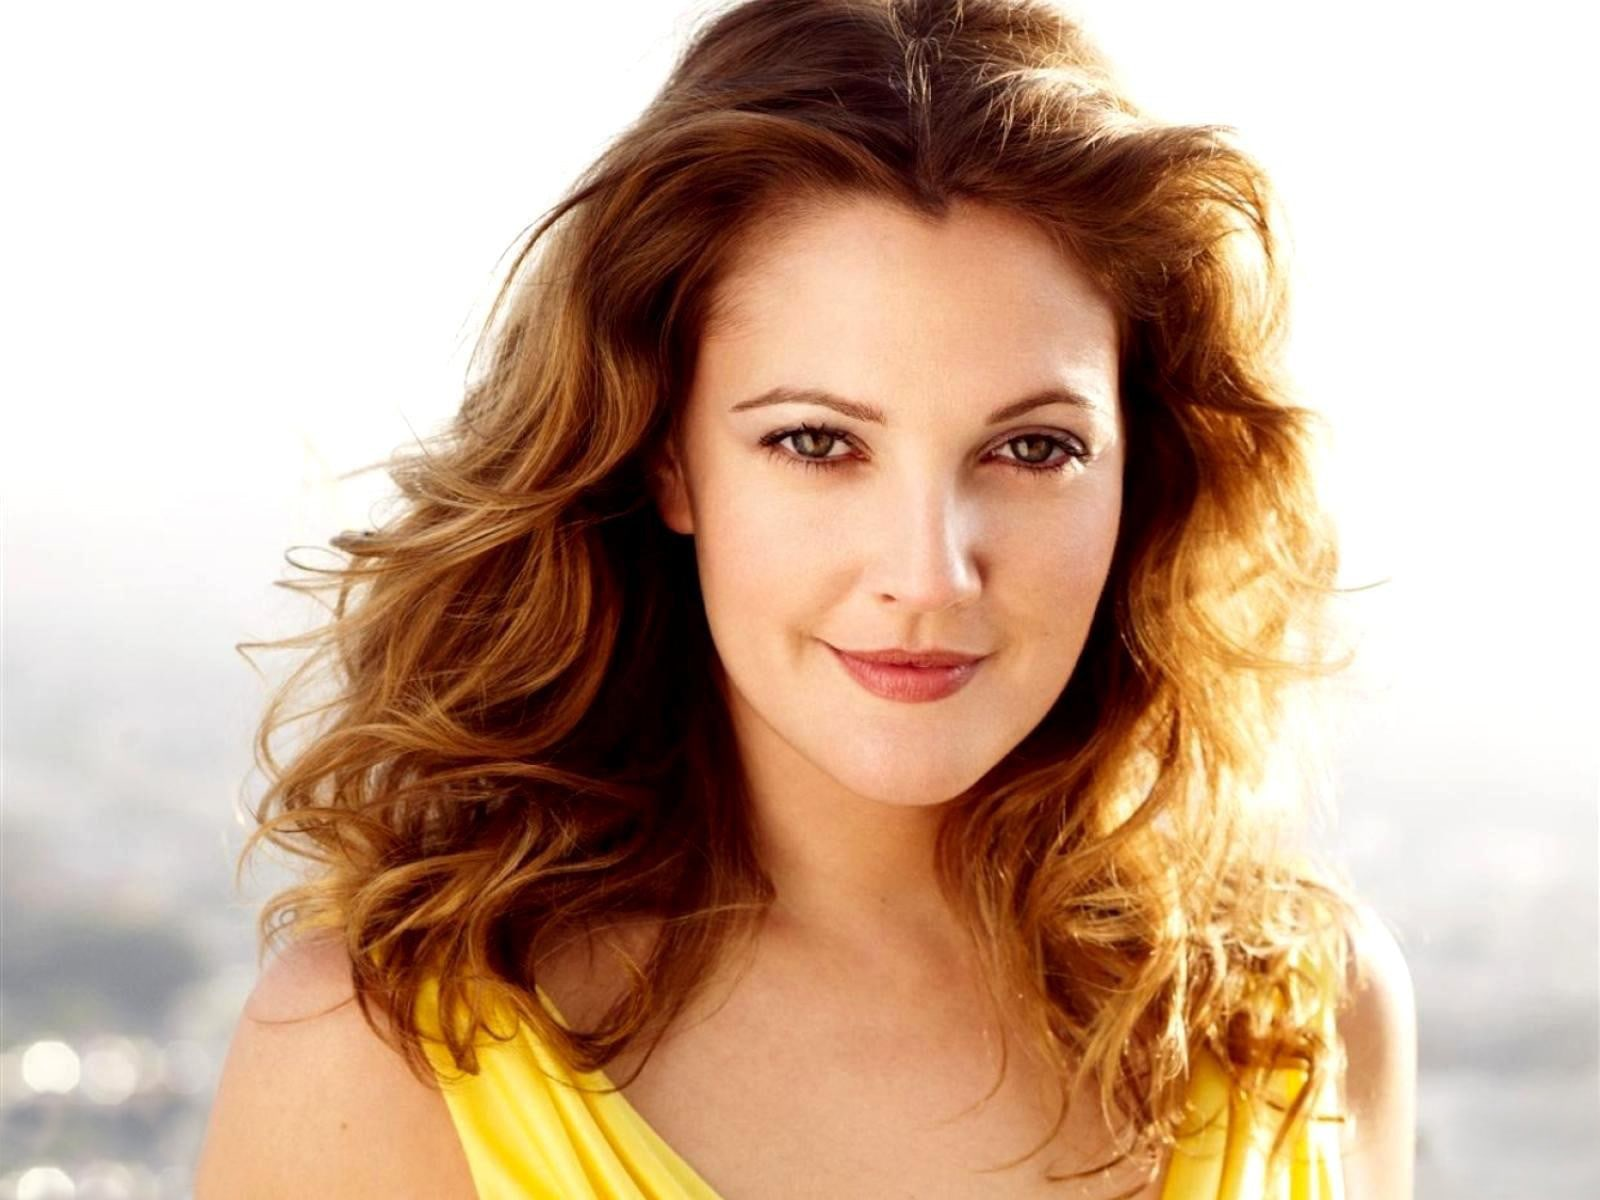 Drew Barrymore Backgrounds